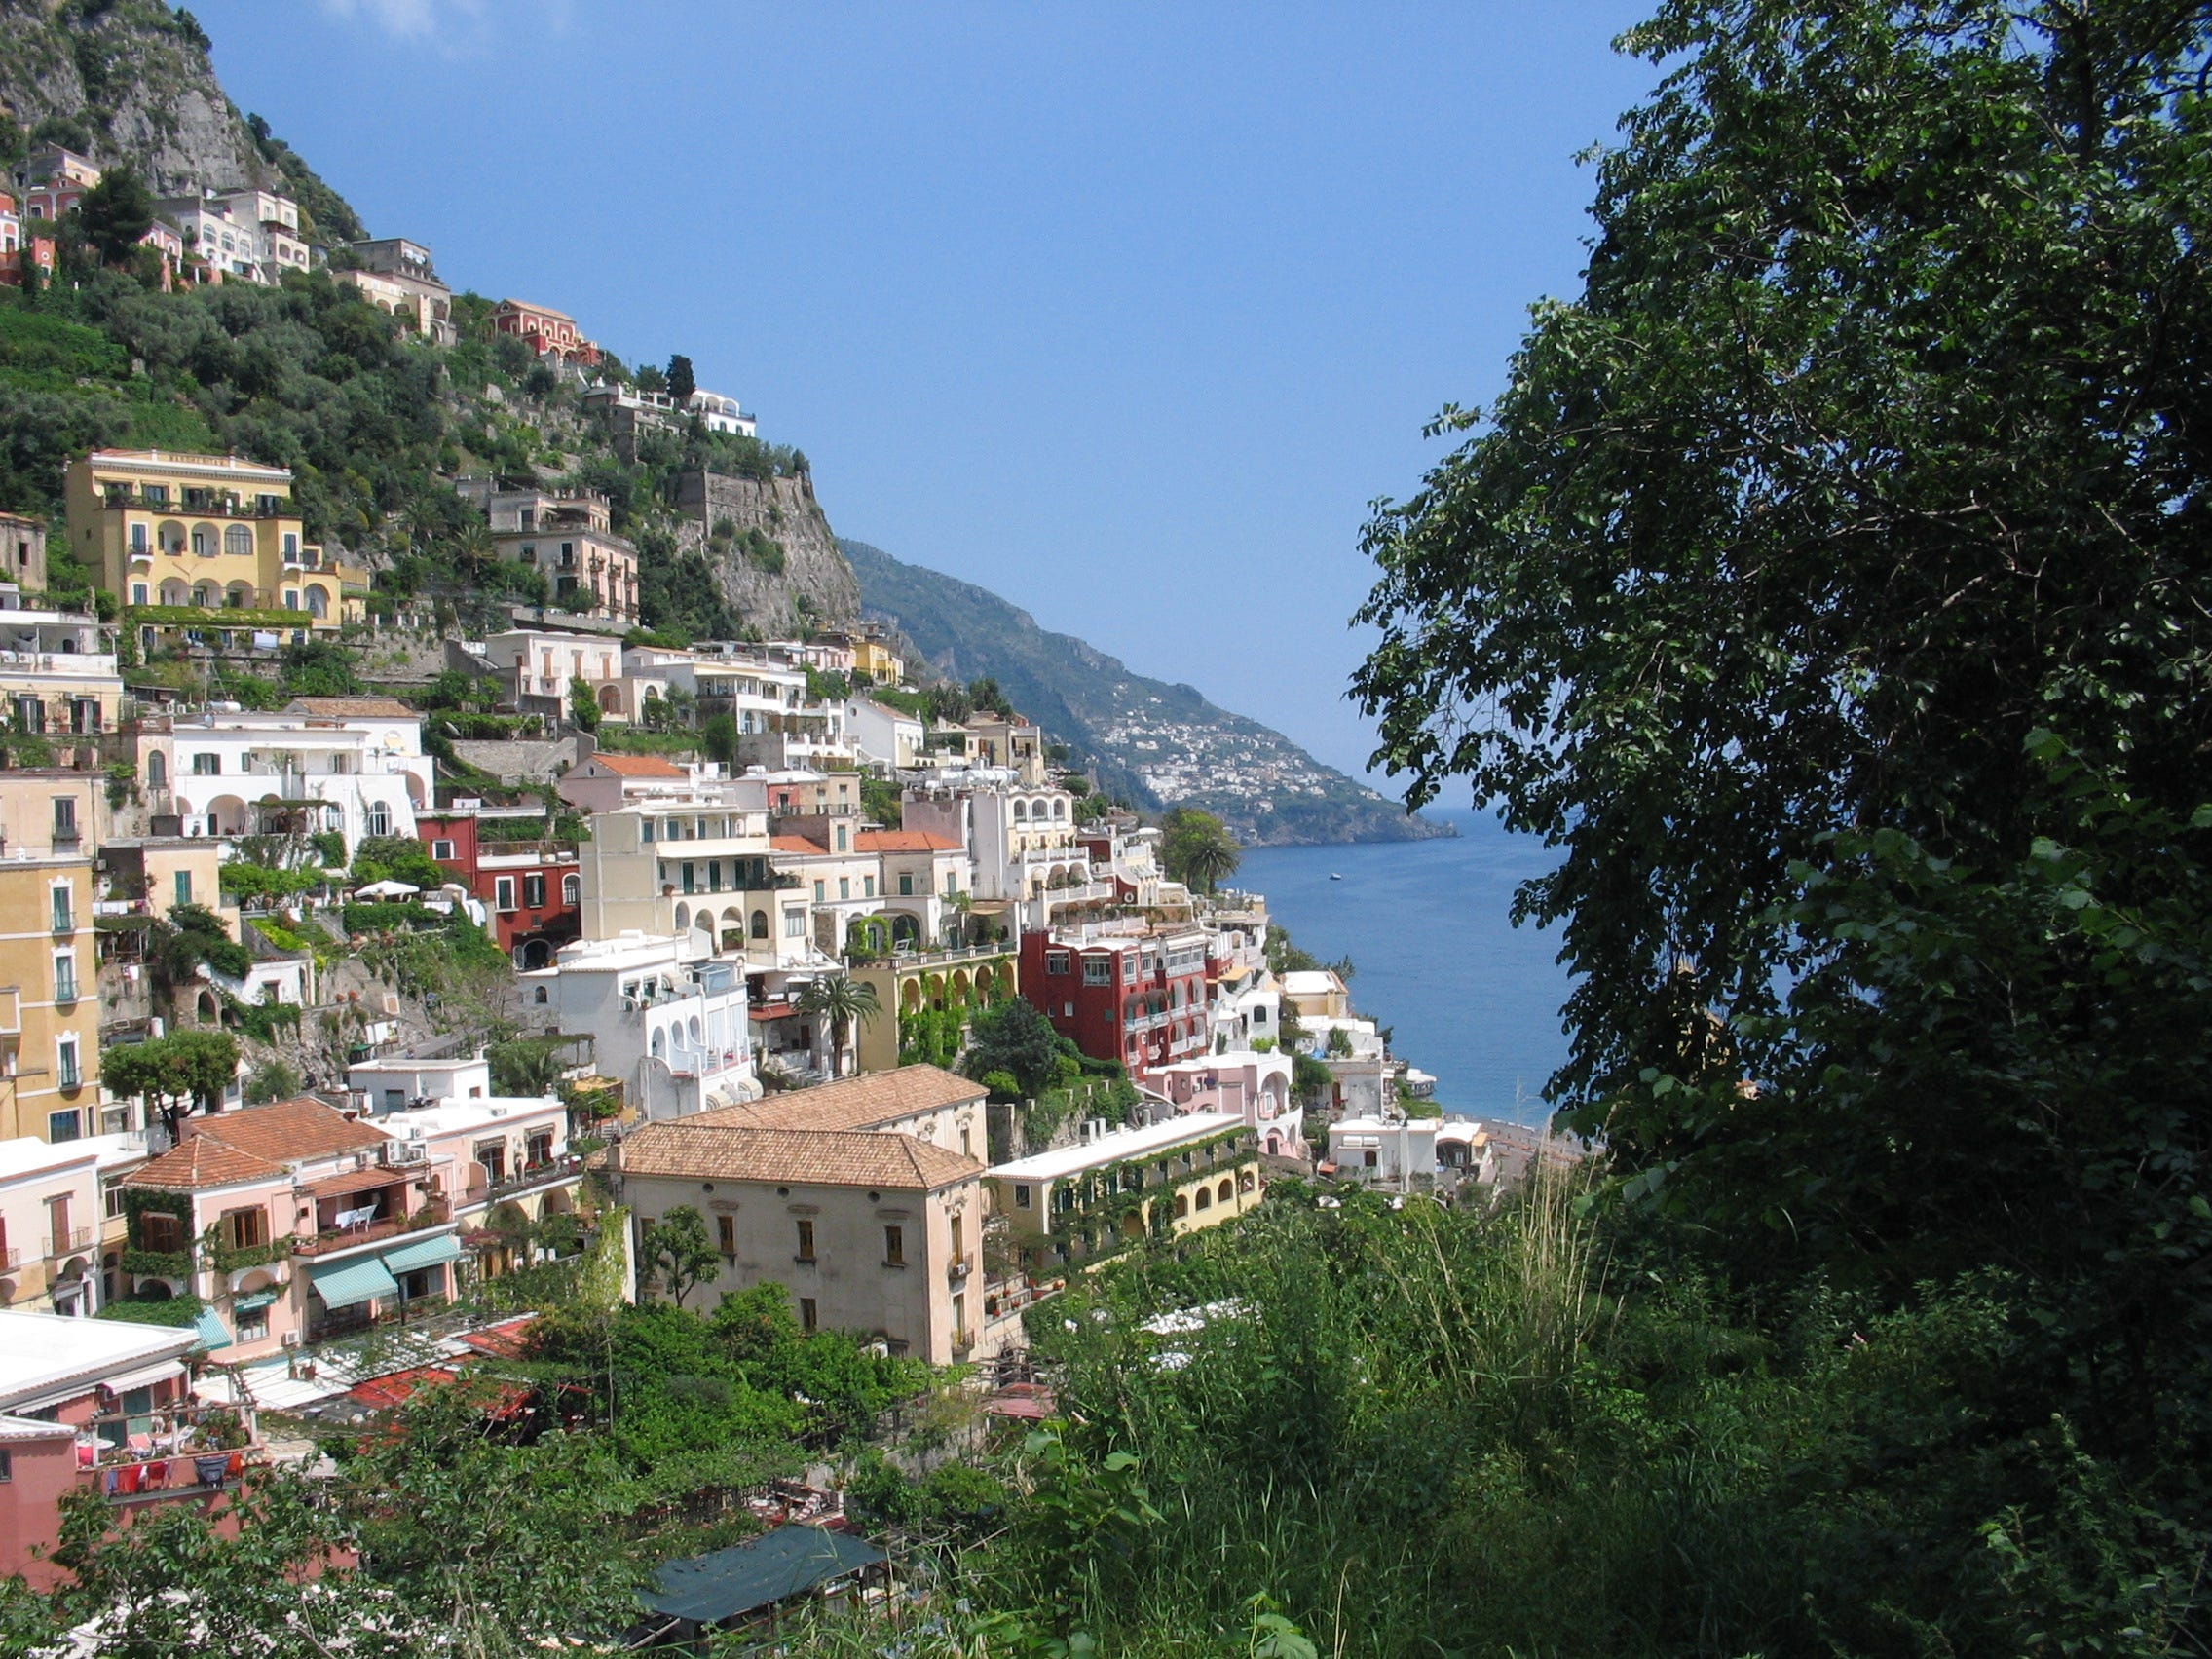 A view of the city of Positano on the Amalfi Coast of Italy. (Barry Blechman) (Via MerlinFTP Drop)